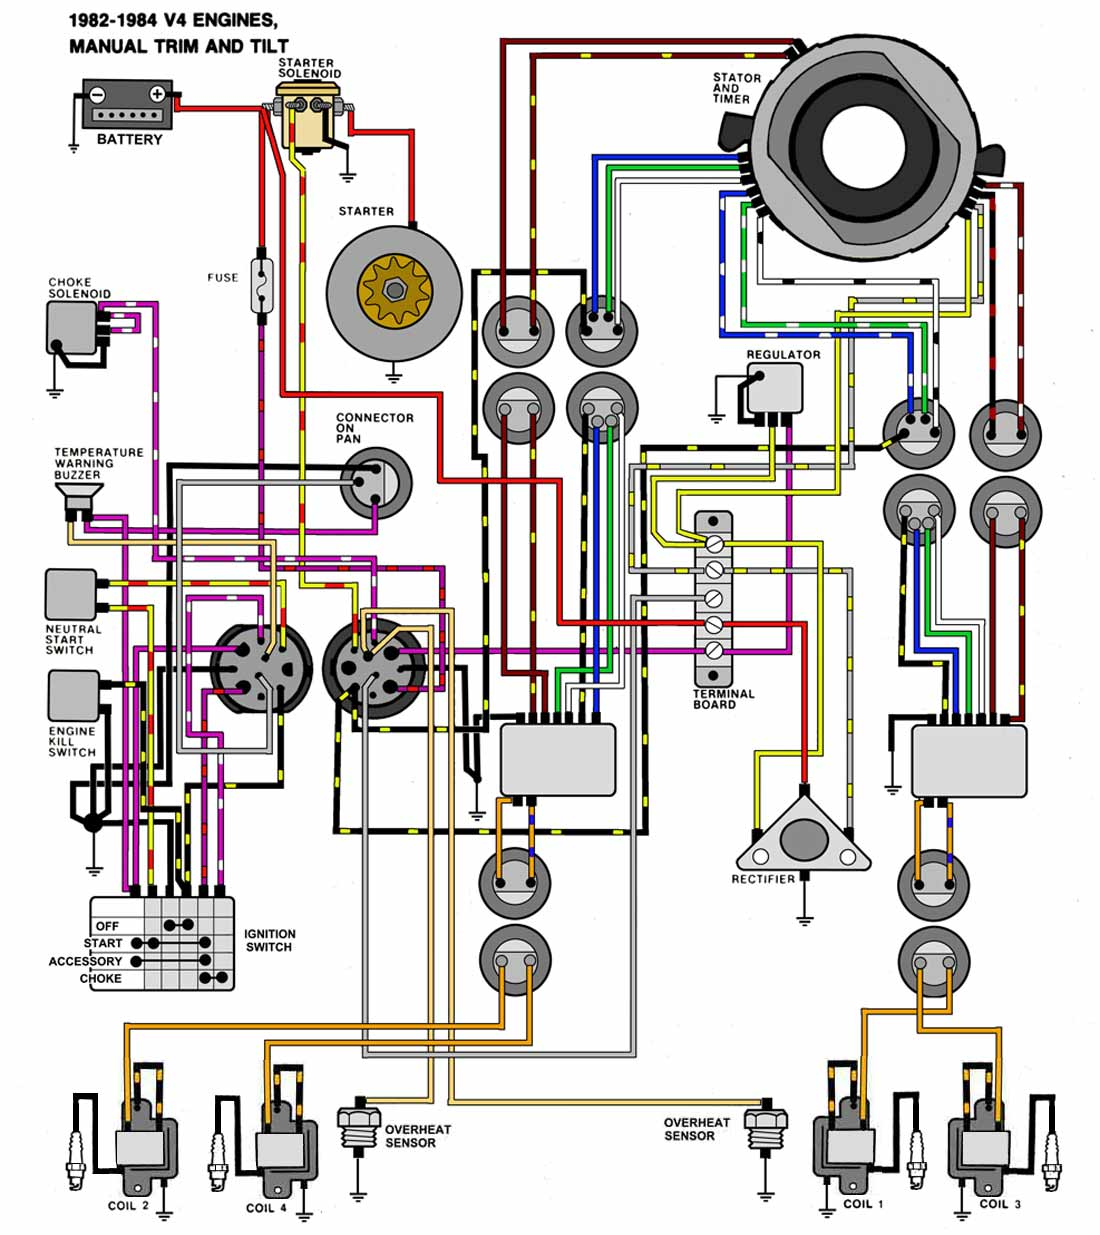 medium resolution of 70 hp evinrude outboard motor wiring diagram 70 hp johnson 1990 60 hp evinrude wiring diagram schematic